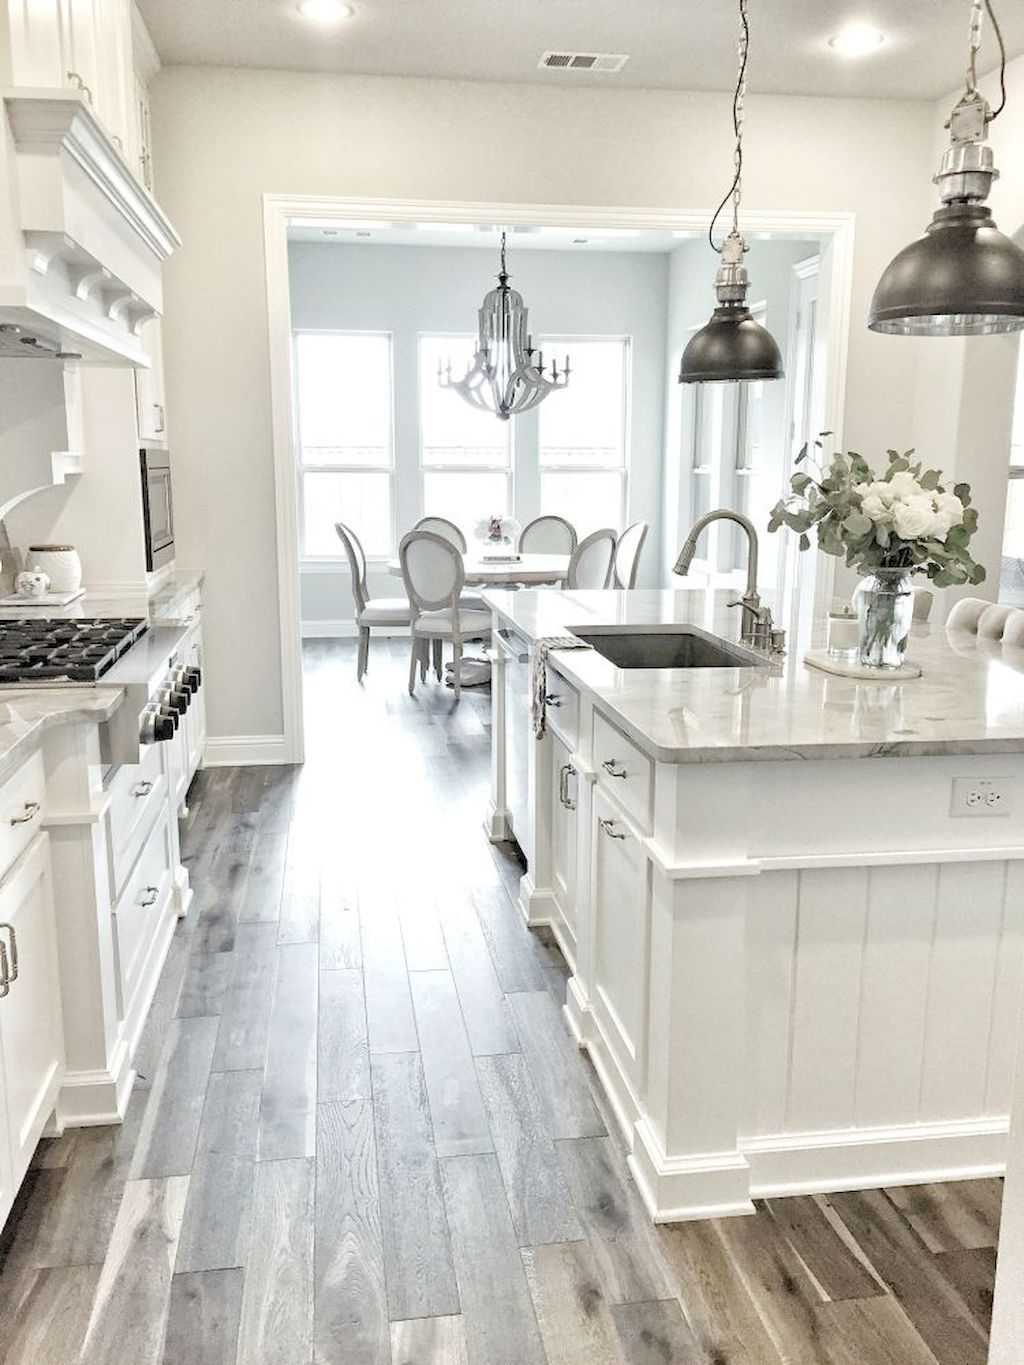 Best 100 White Kitchen Cabinets Decor Ideas For Farmhouse Style Design 17 White Kitchen Design Kitchen Cabinets Decor Gray And White Kitchen